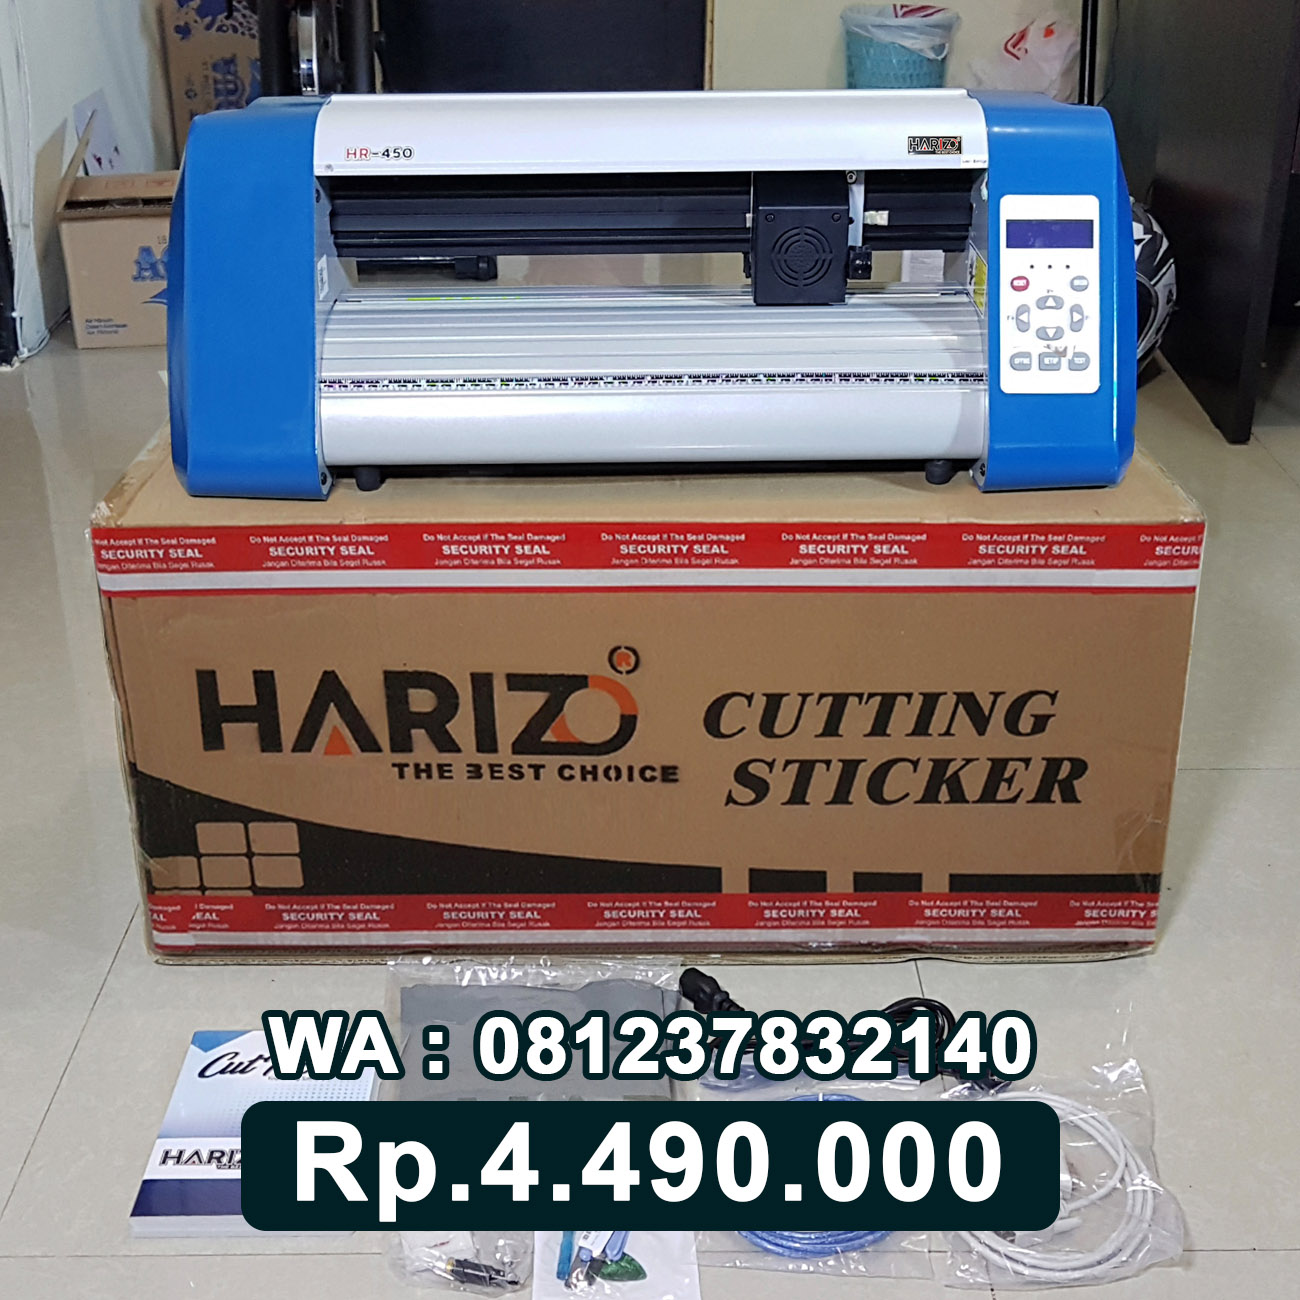 JUAL MESIN CUTTING STICKER HARIZO 450 Gianyar